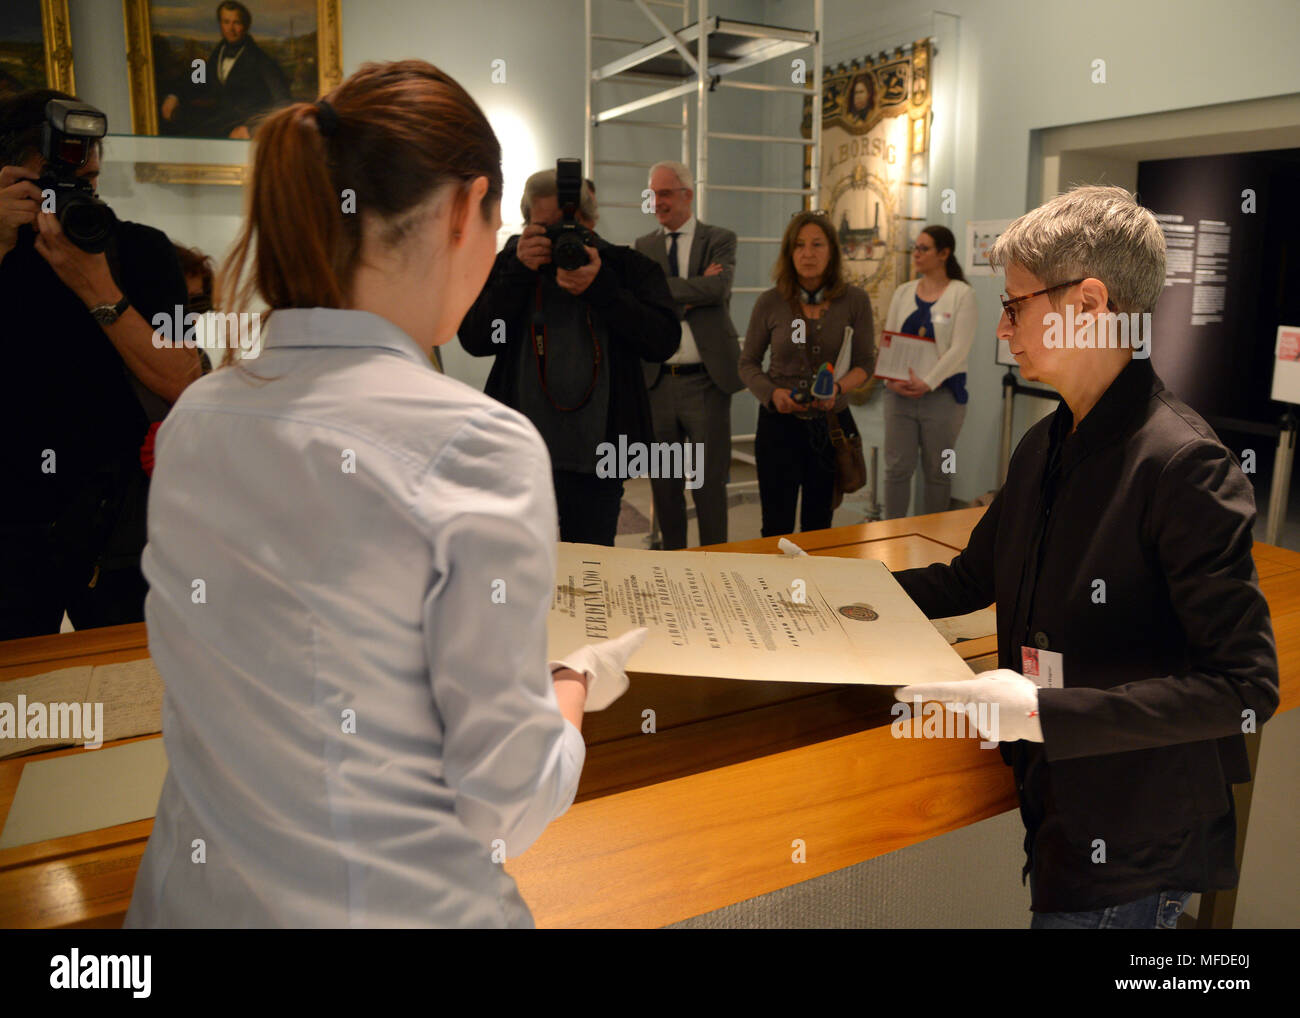 "25 April 2018, Germany, Trier: Curator Barbara Wagner (R) and restorator Sarah Bruch place the doctoral certificate of Karl Marx on the exhibition table at the large Karl Marx exhibition at the Rheinische Landesmuseum Trier. According to its organizers, Rhineland-Palatinate's state exhibition ""Karl Marx 1818 - 1883. Life. Work. Times"" is the first ever historico-cultural exhibition on the thinker. It can be seen at the Rheinische Landesmuseum Trier and at the Simeonstift Trier city museum. Photo: Harald Tittel/dpa Stock Photo"